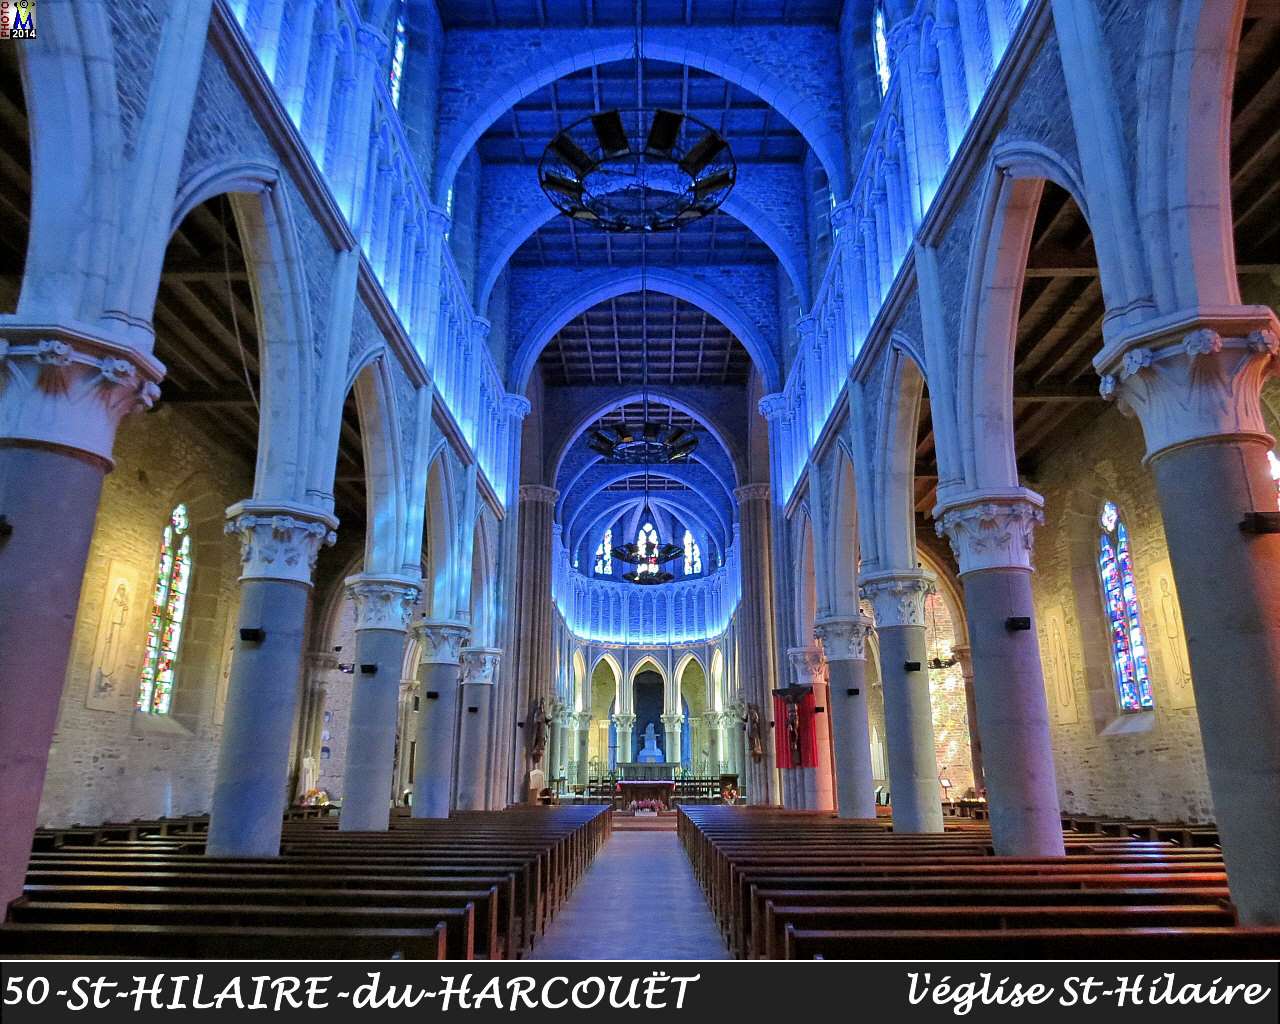 50StHILAIRE-HARCOUET_eglise_202.jpg